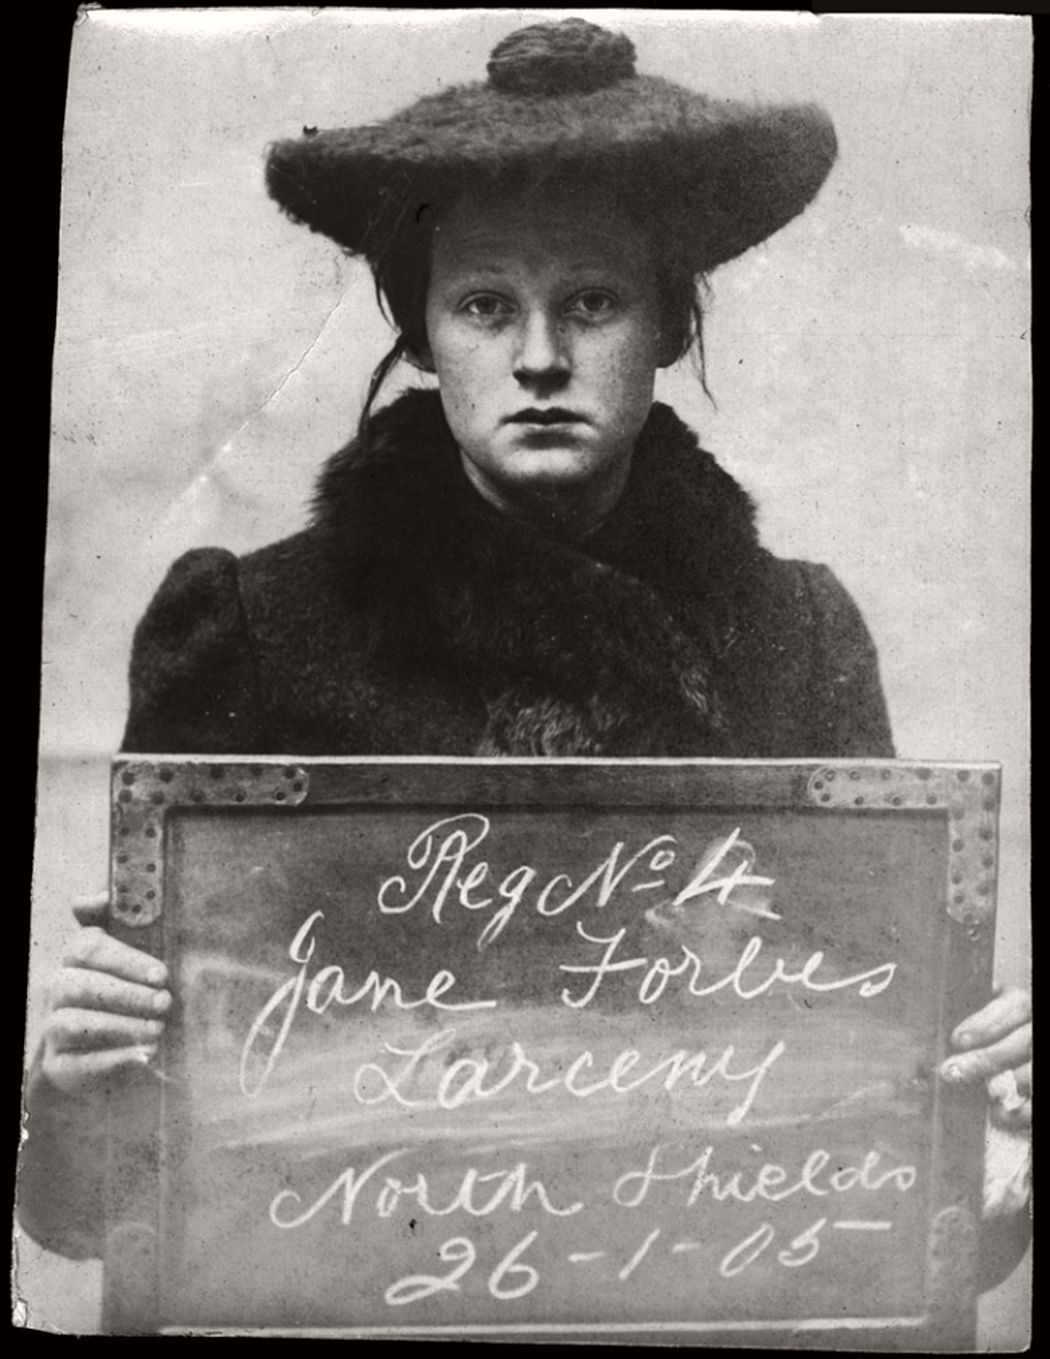 vintage-mug-shot-of-women-criminals-from-north-shields-1903-1905-02